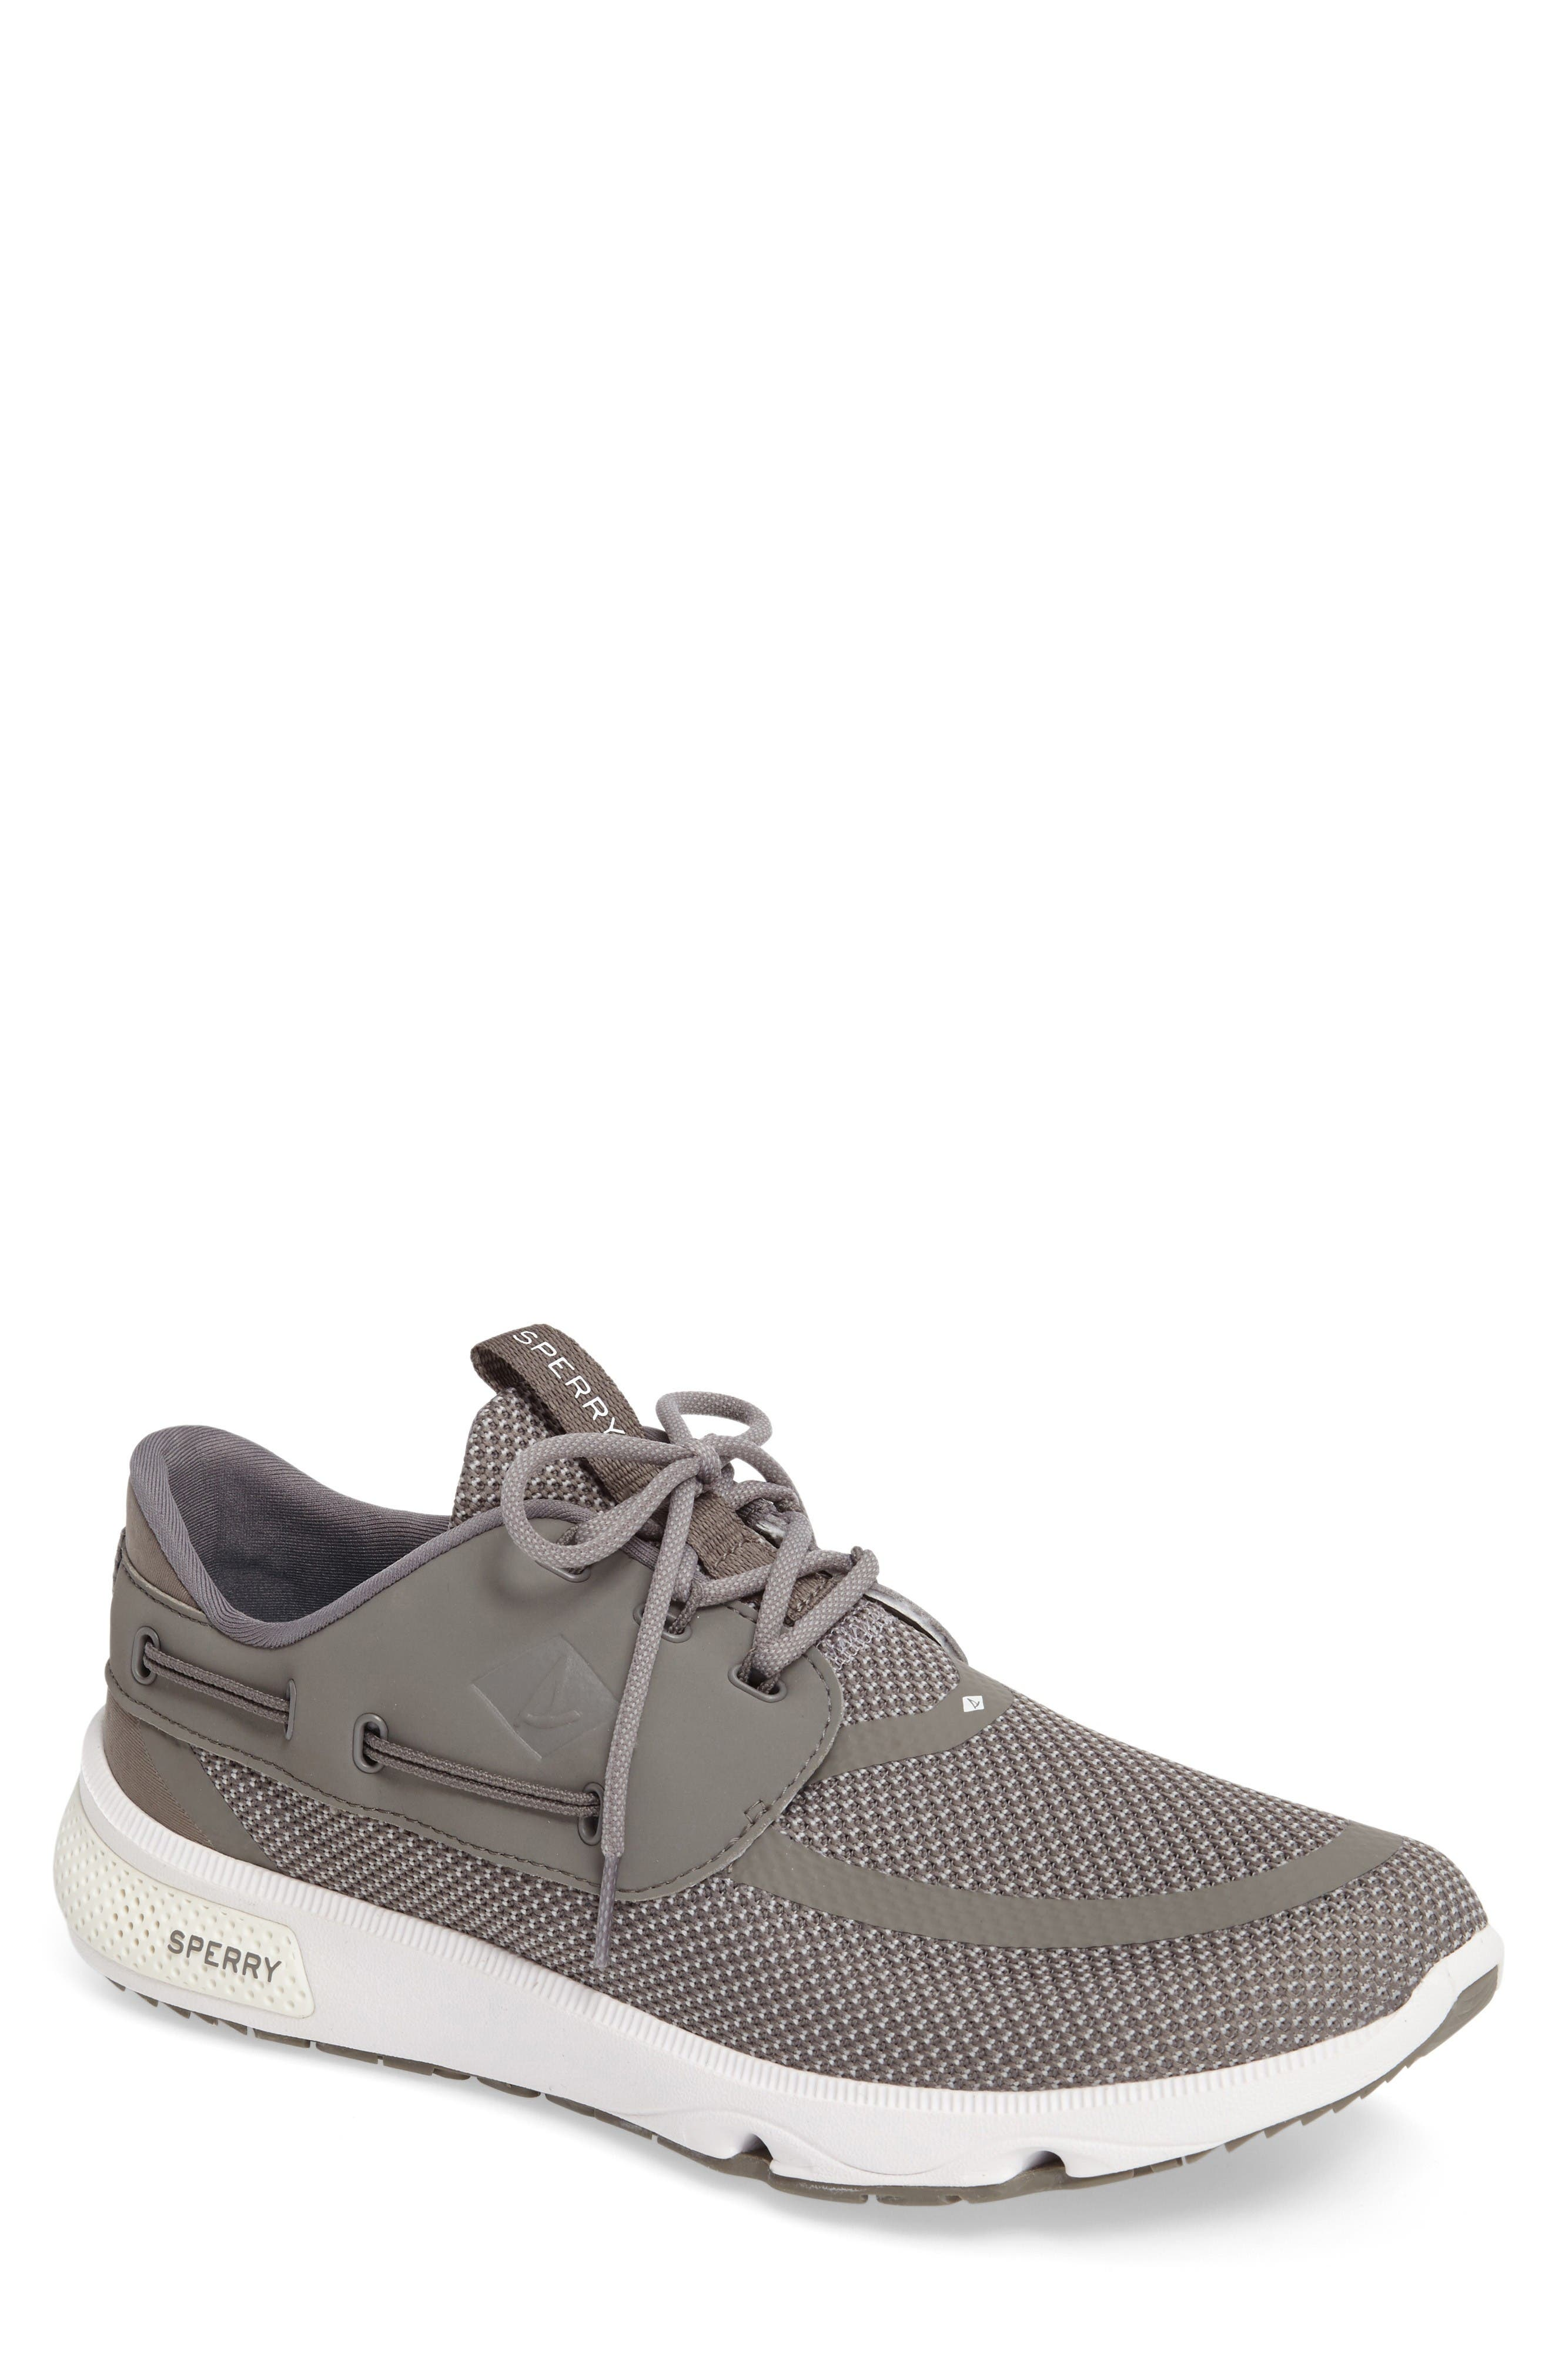 Sperry 7 Seas Sneaker (Men)